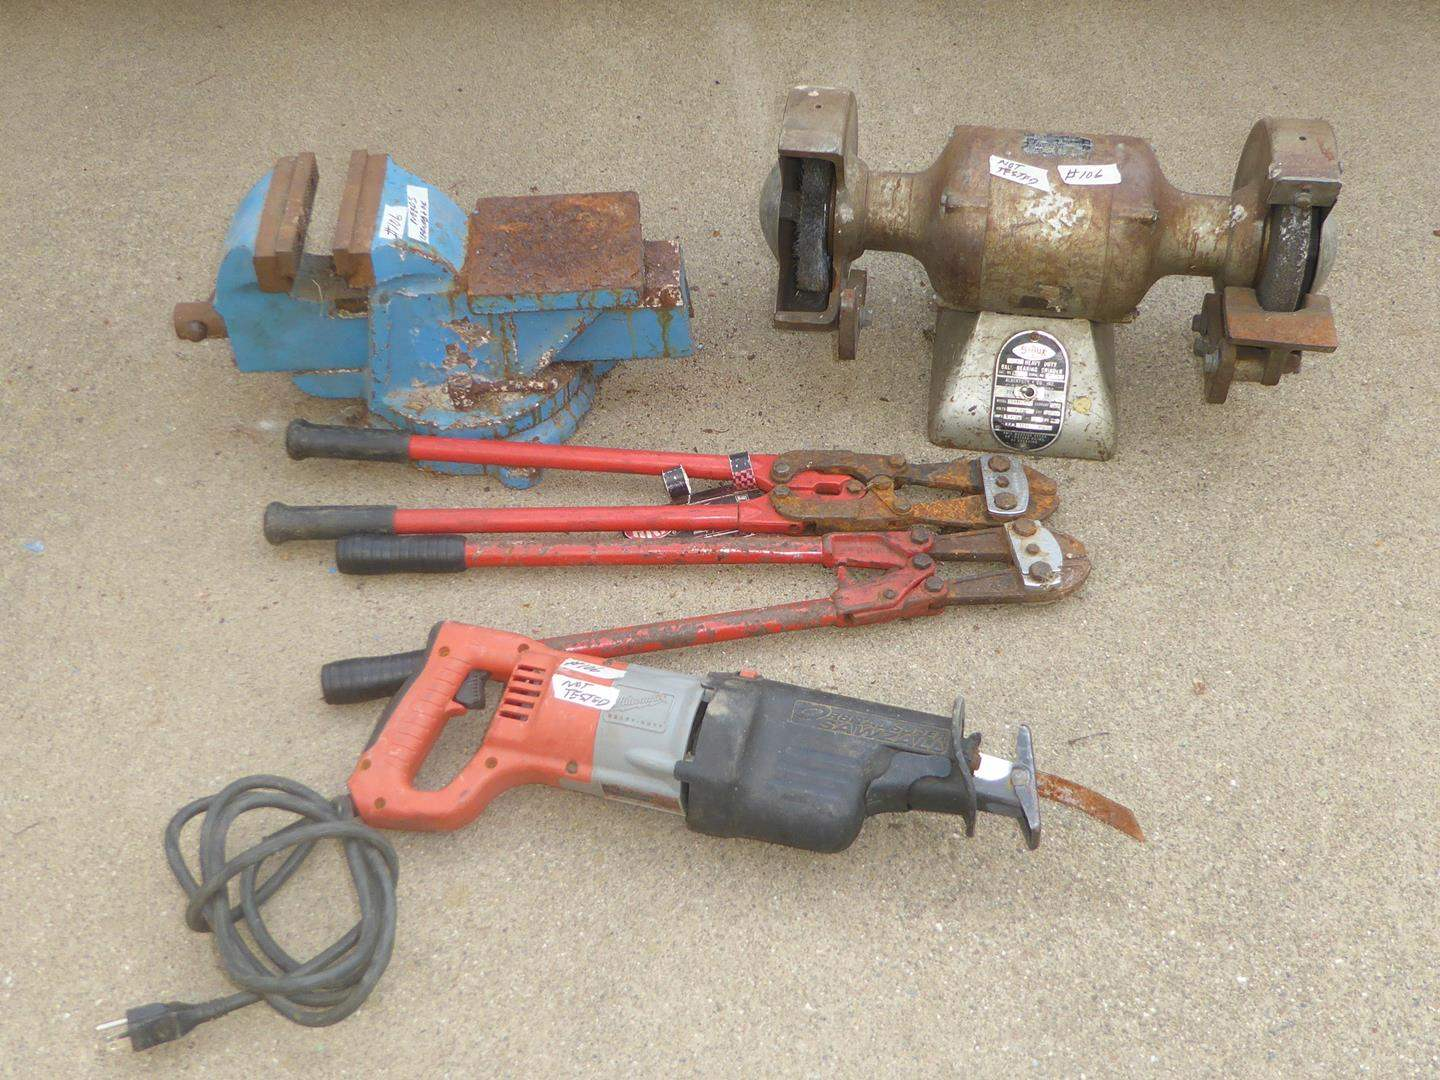 Lot # 106 - Sawzall, Bolt Cutters, Bench Vise & Grinder (main image)